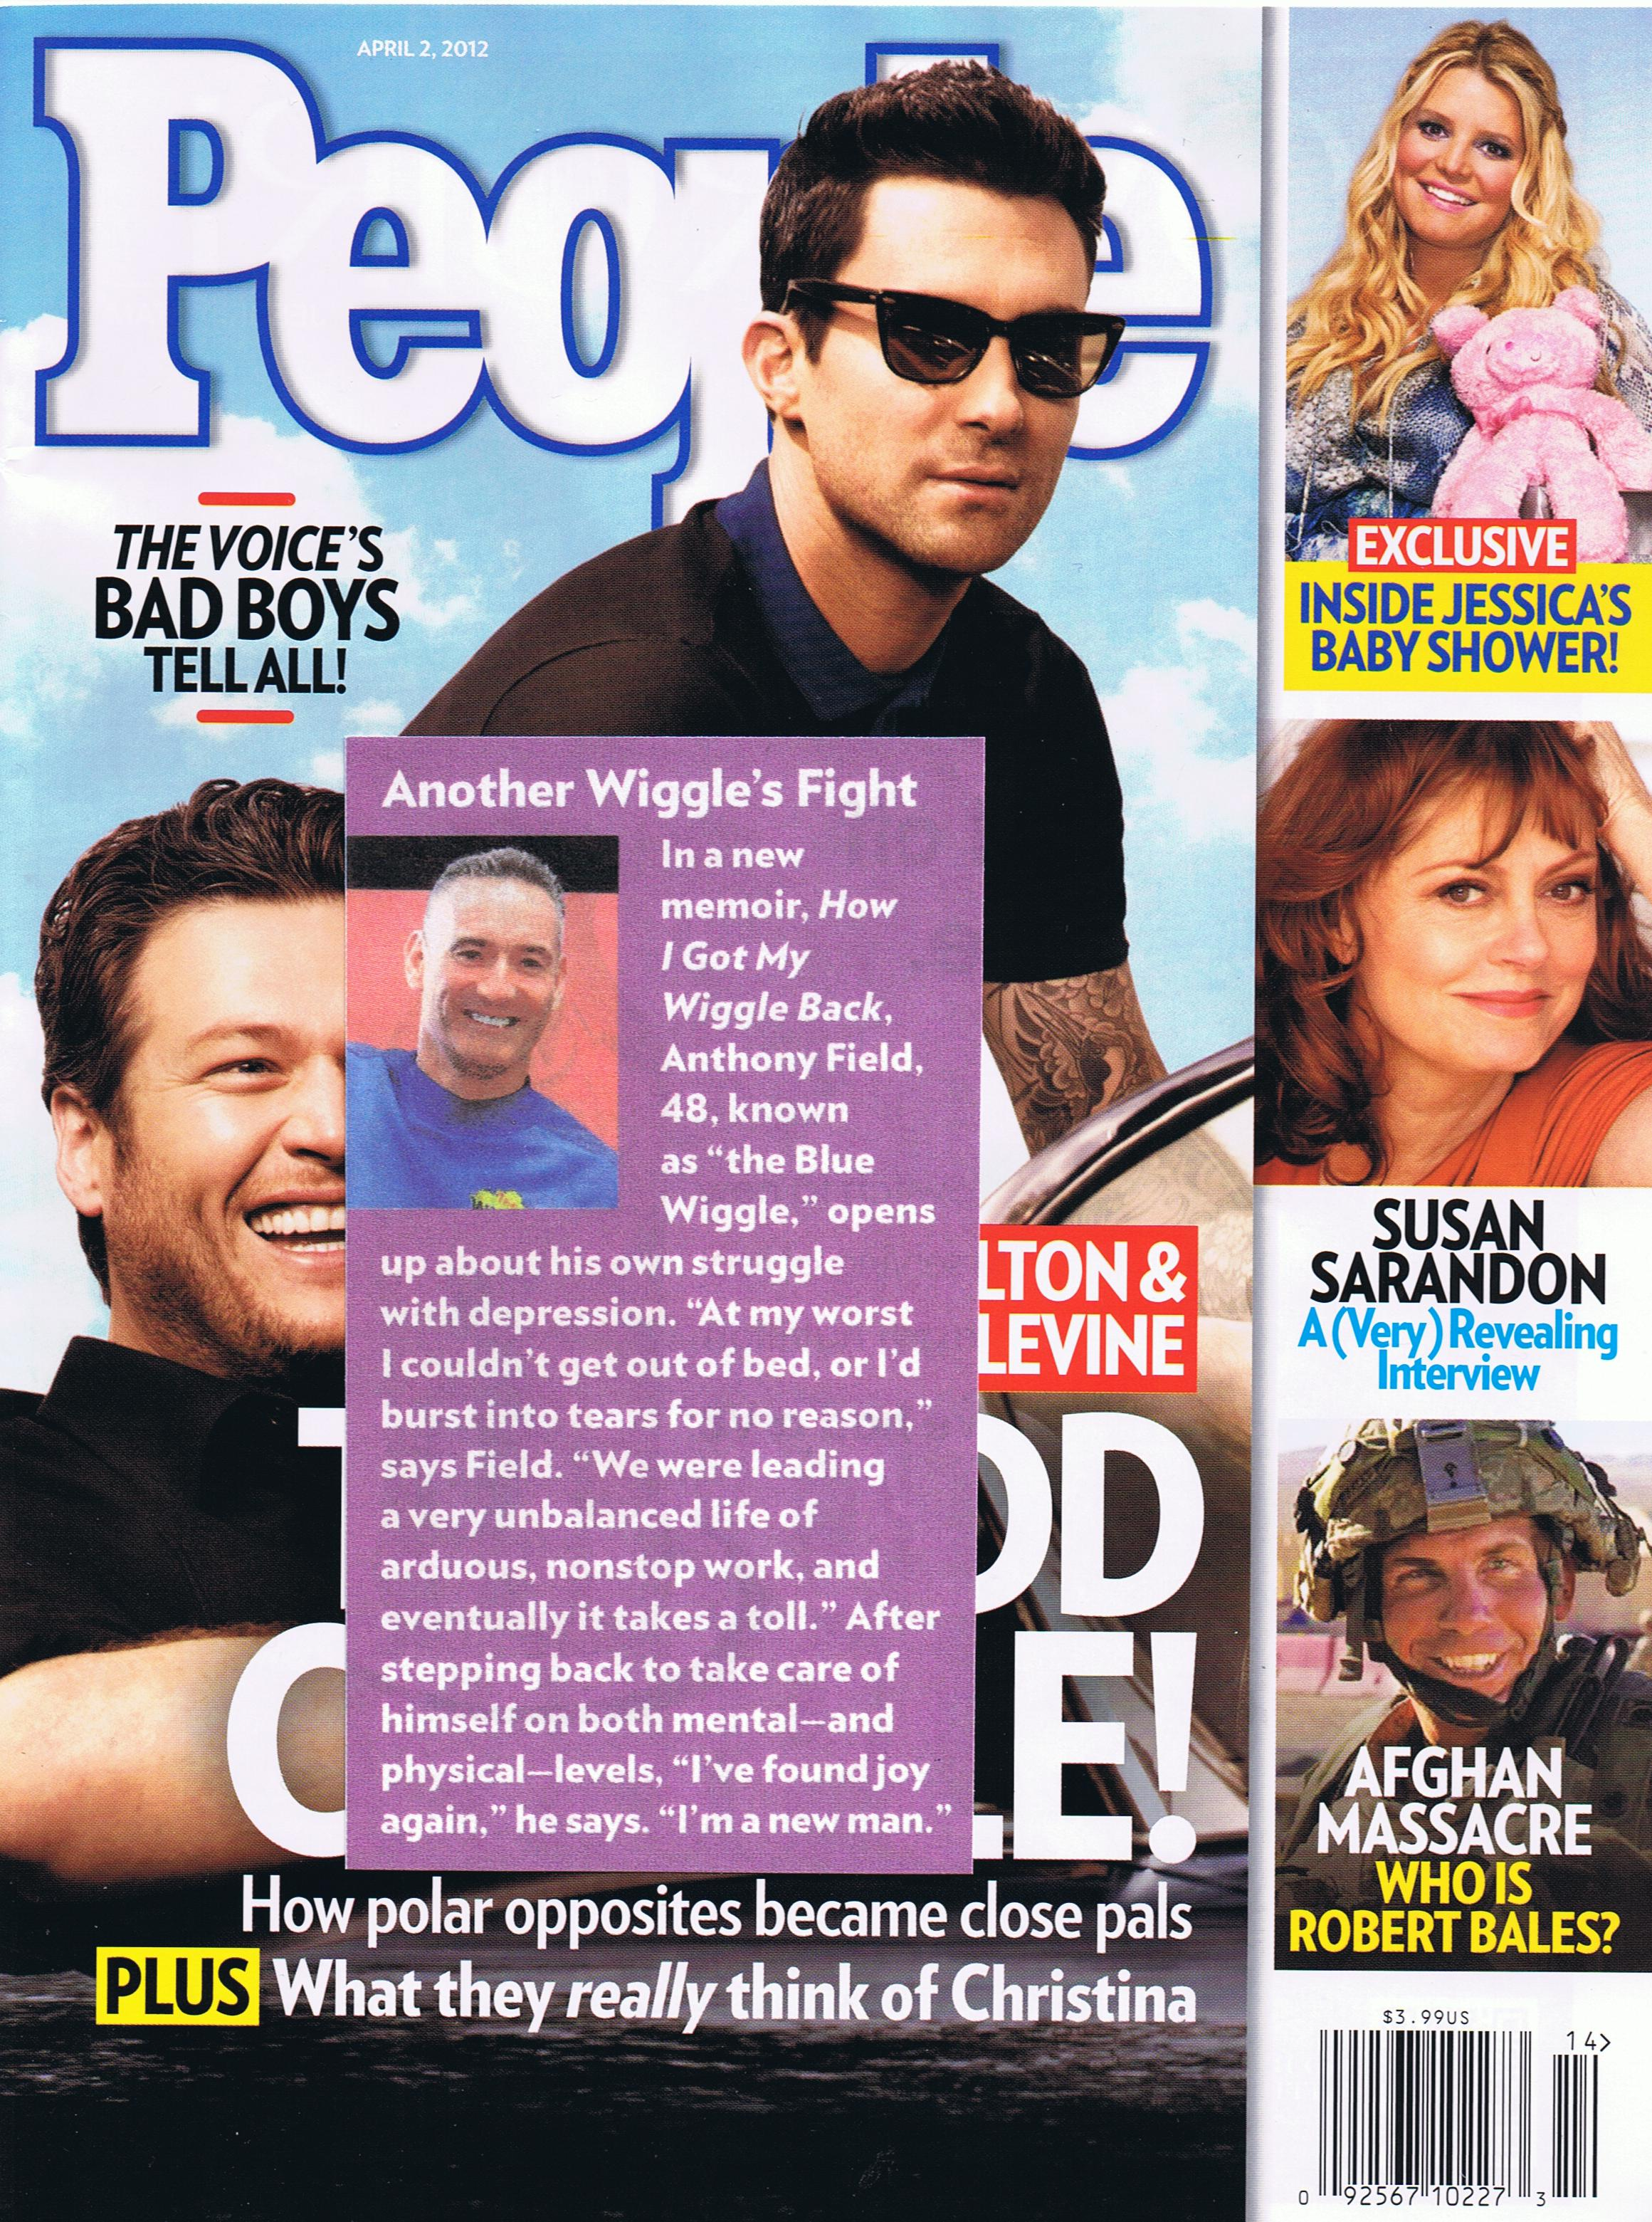 MEDIA ALERT: People Magazine This Week Features Wiggles ...